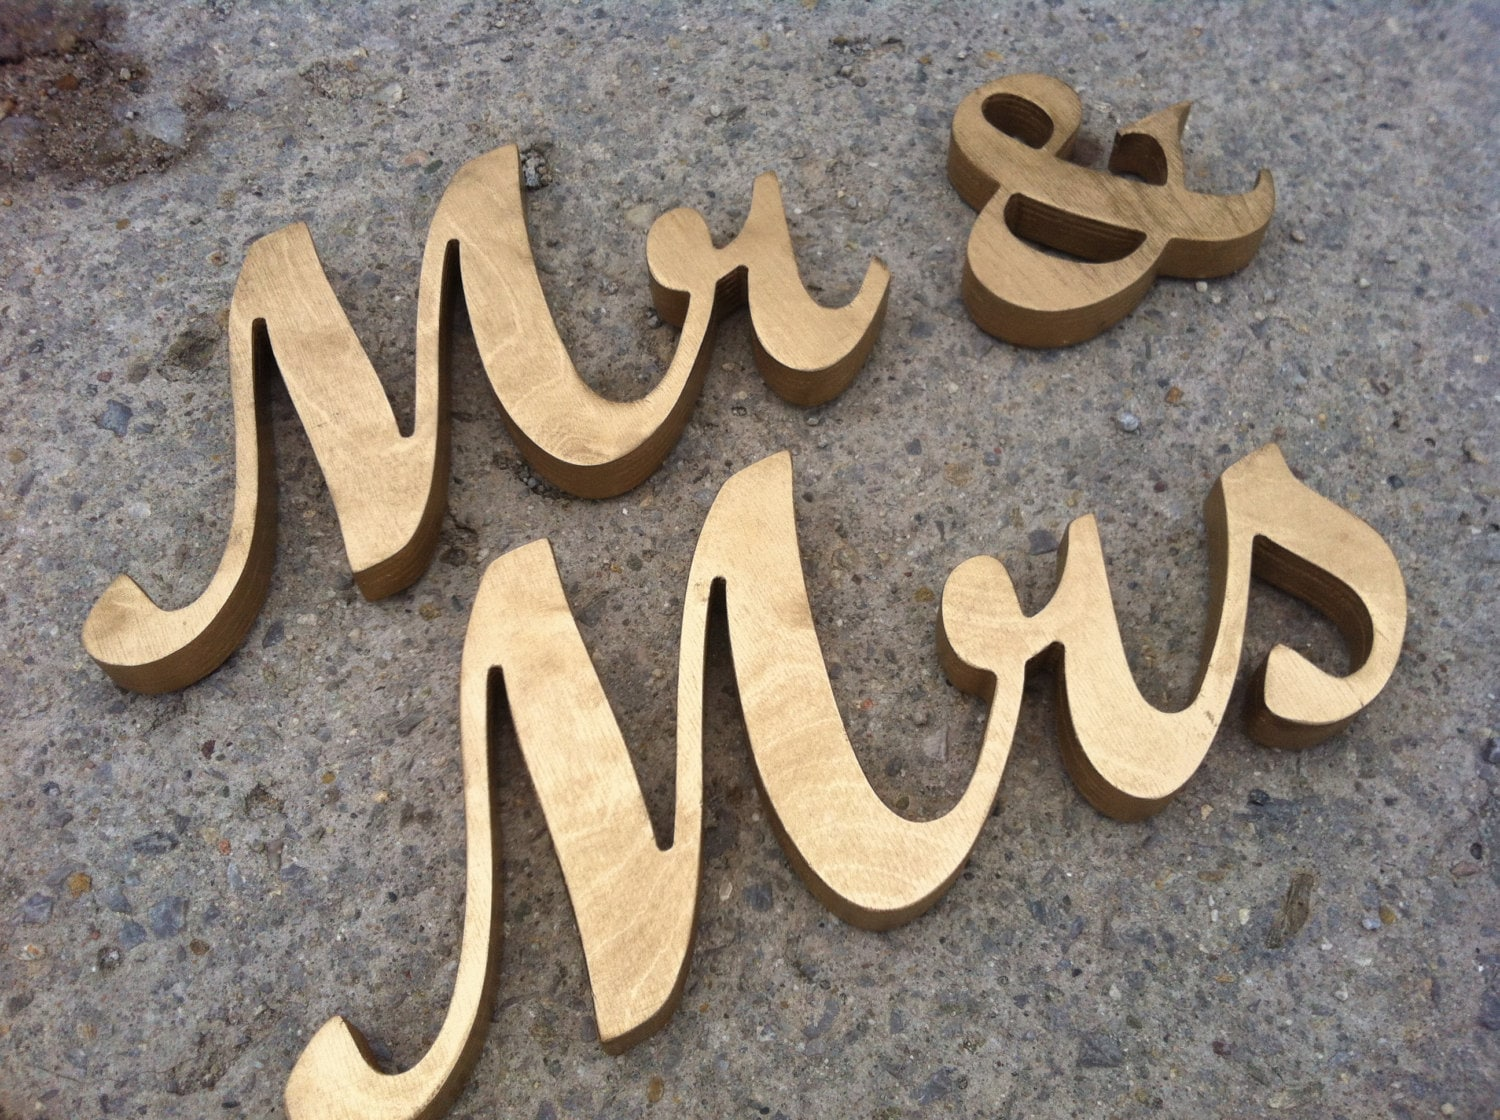 Gold Mr Amp Mrs Wooden Freestanding Letters For Wedding Table